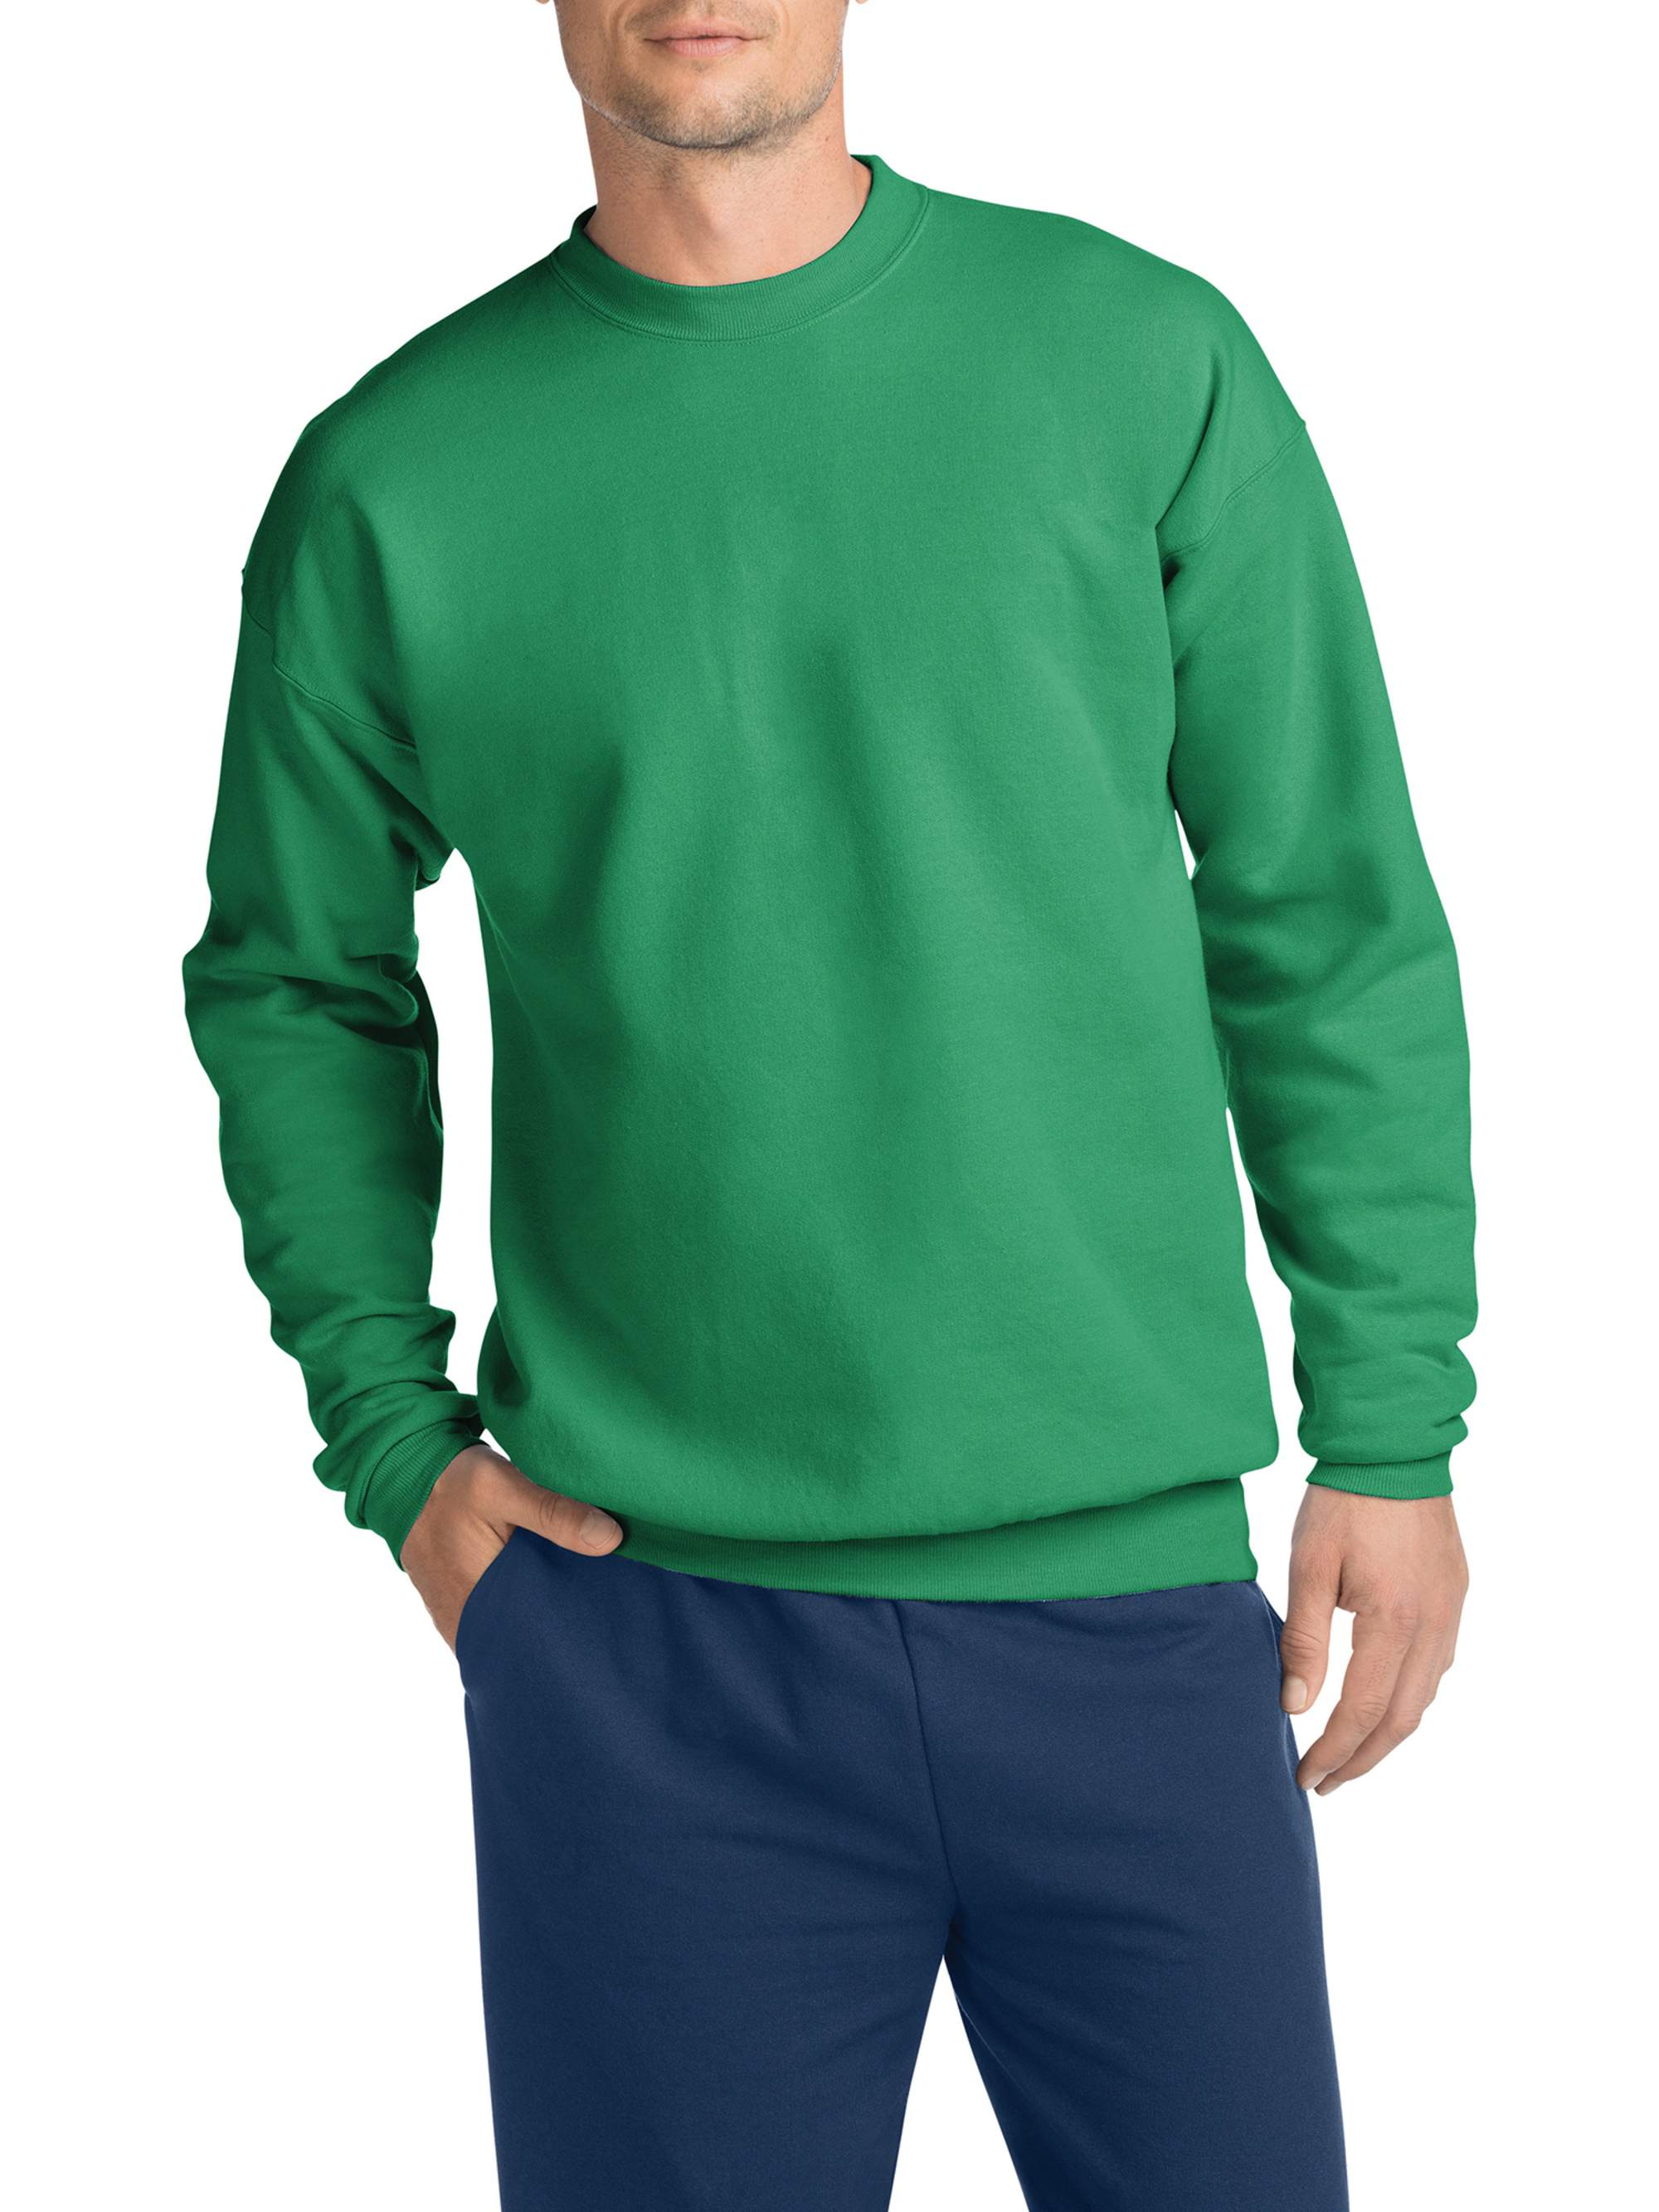 Men's Ecosmart Medium Weight Fleece Crew Neck Sweatshirt